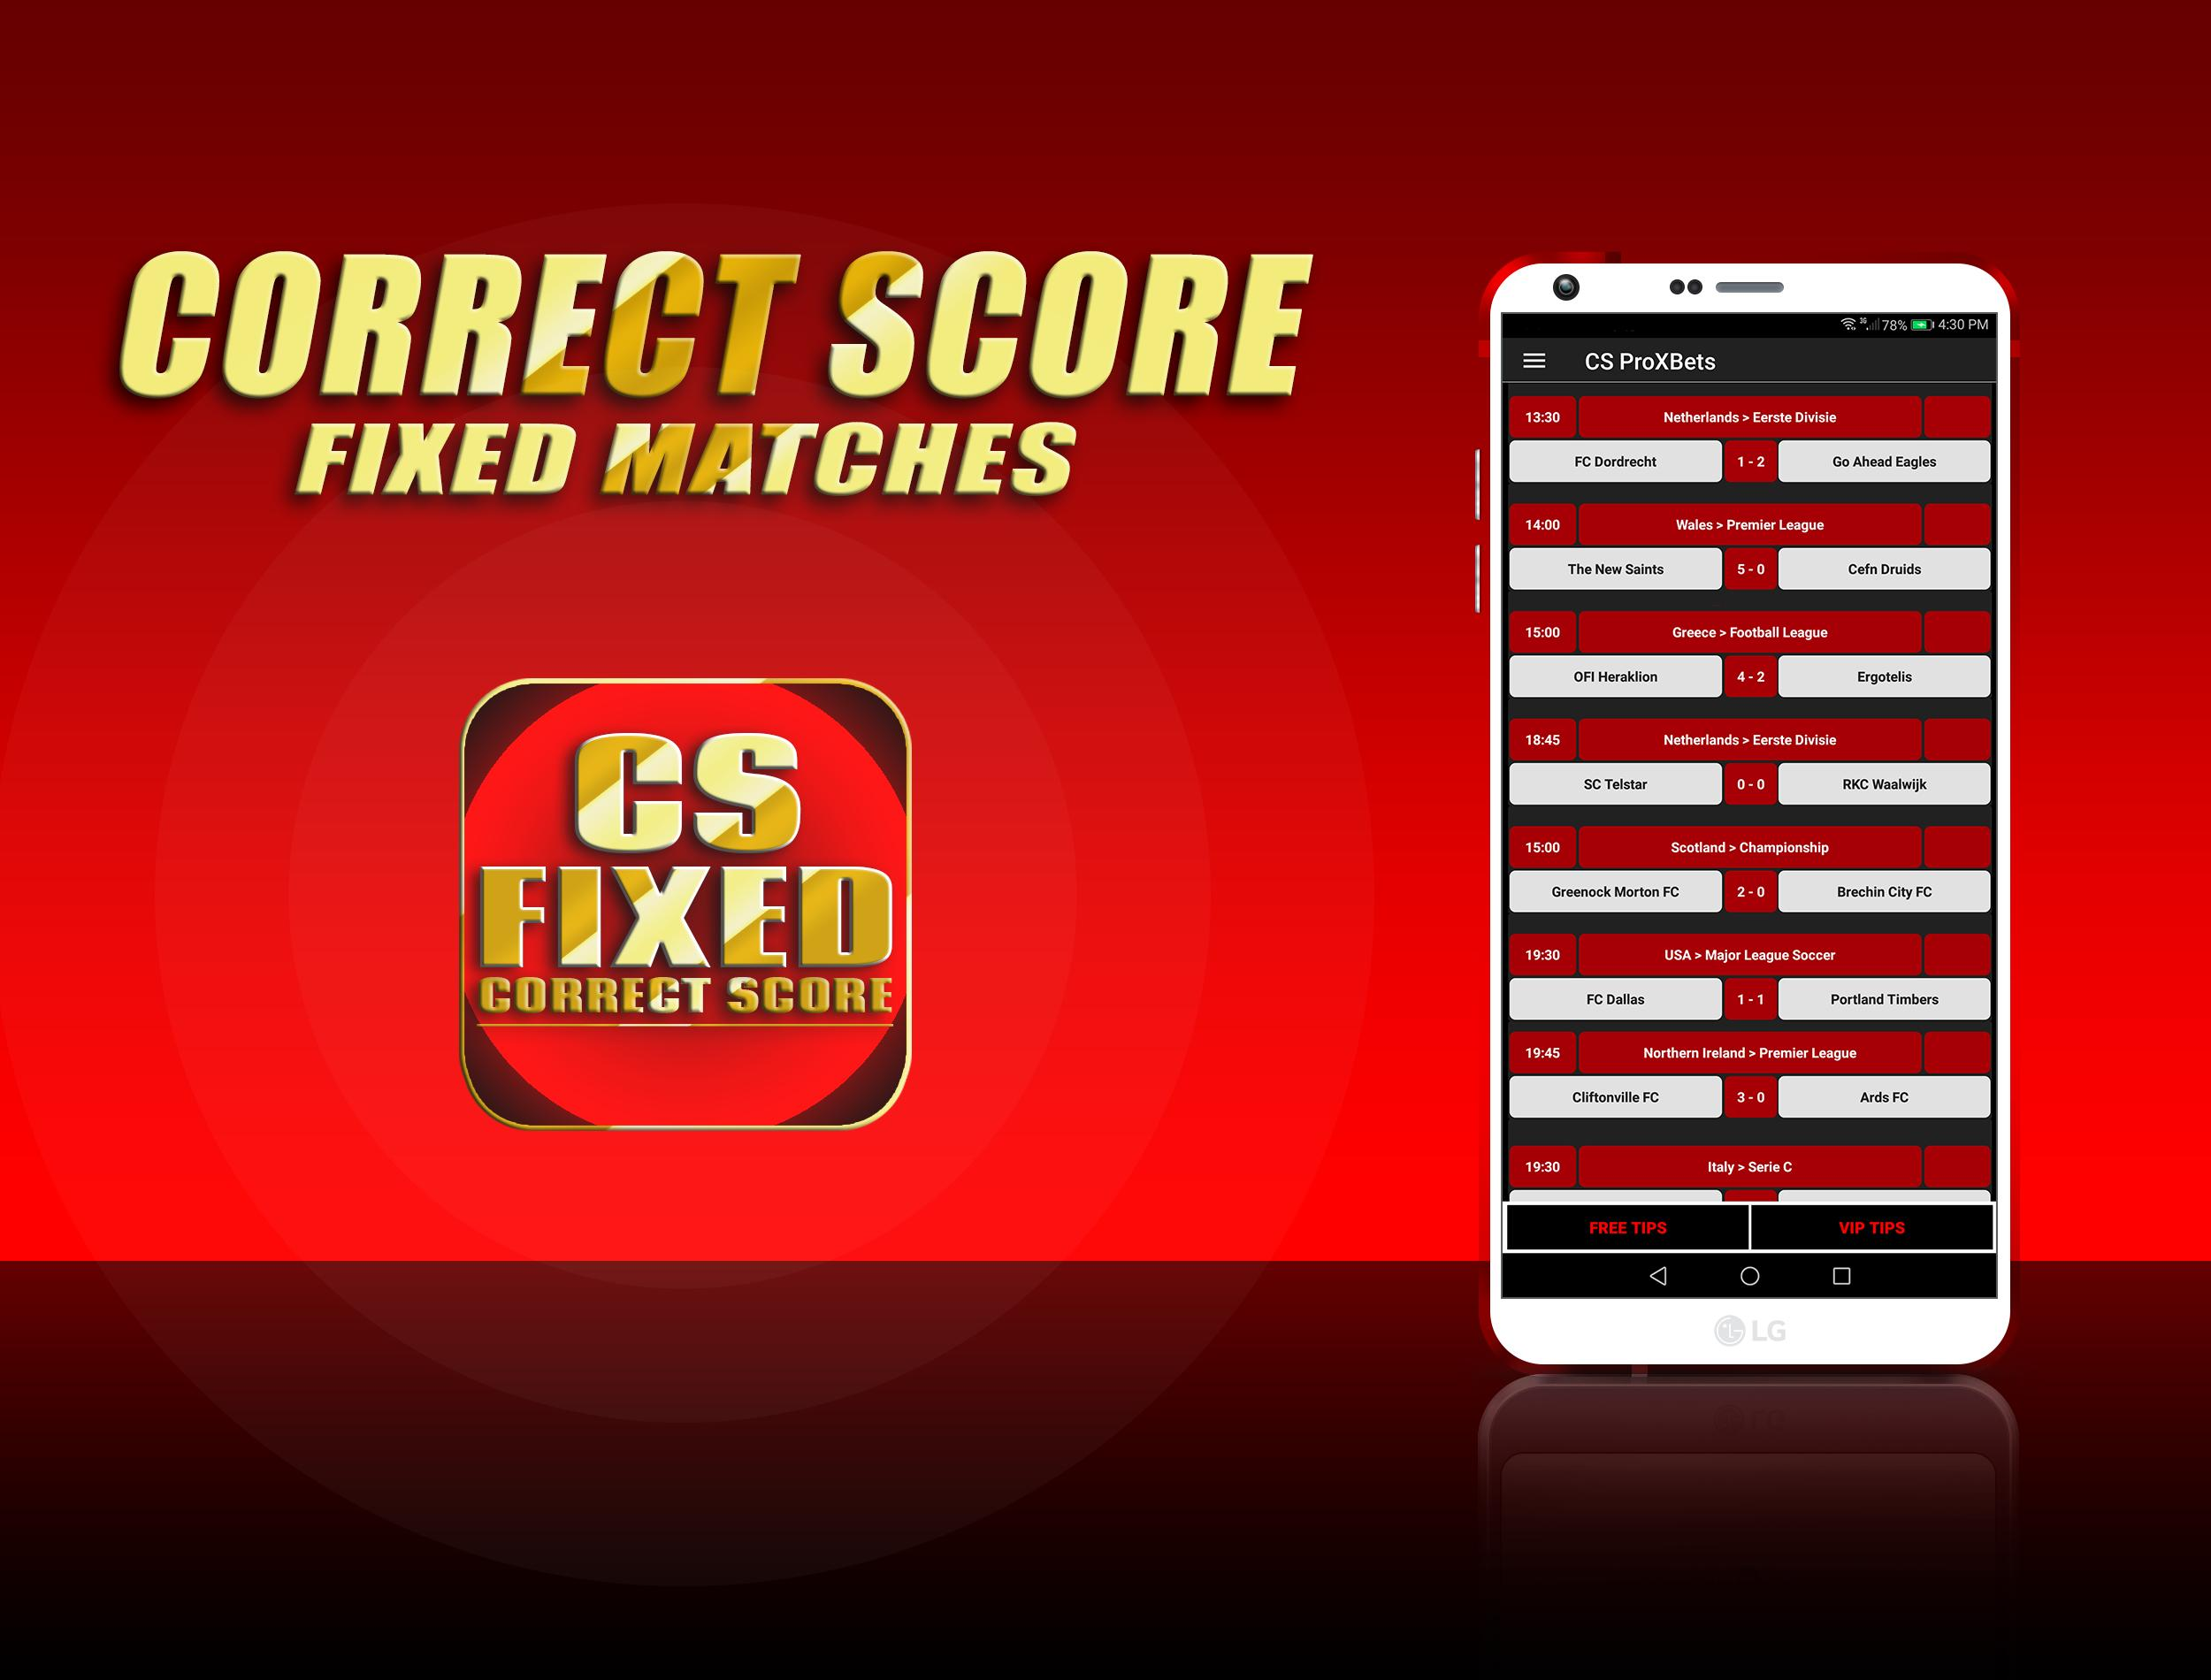 Fixed matches correct score betting tote betting shops locations